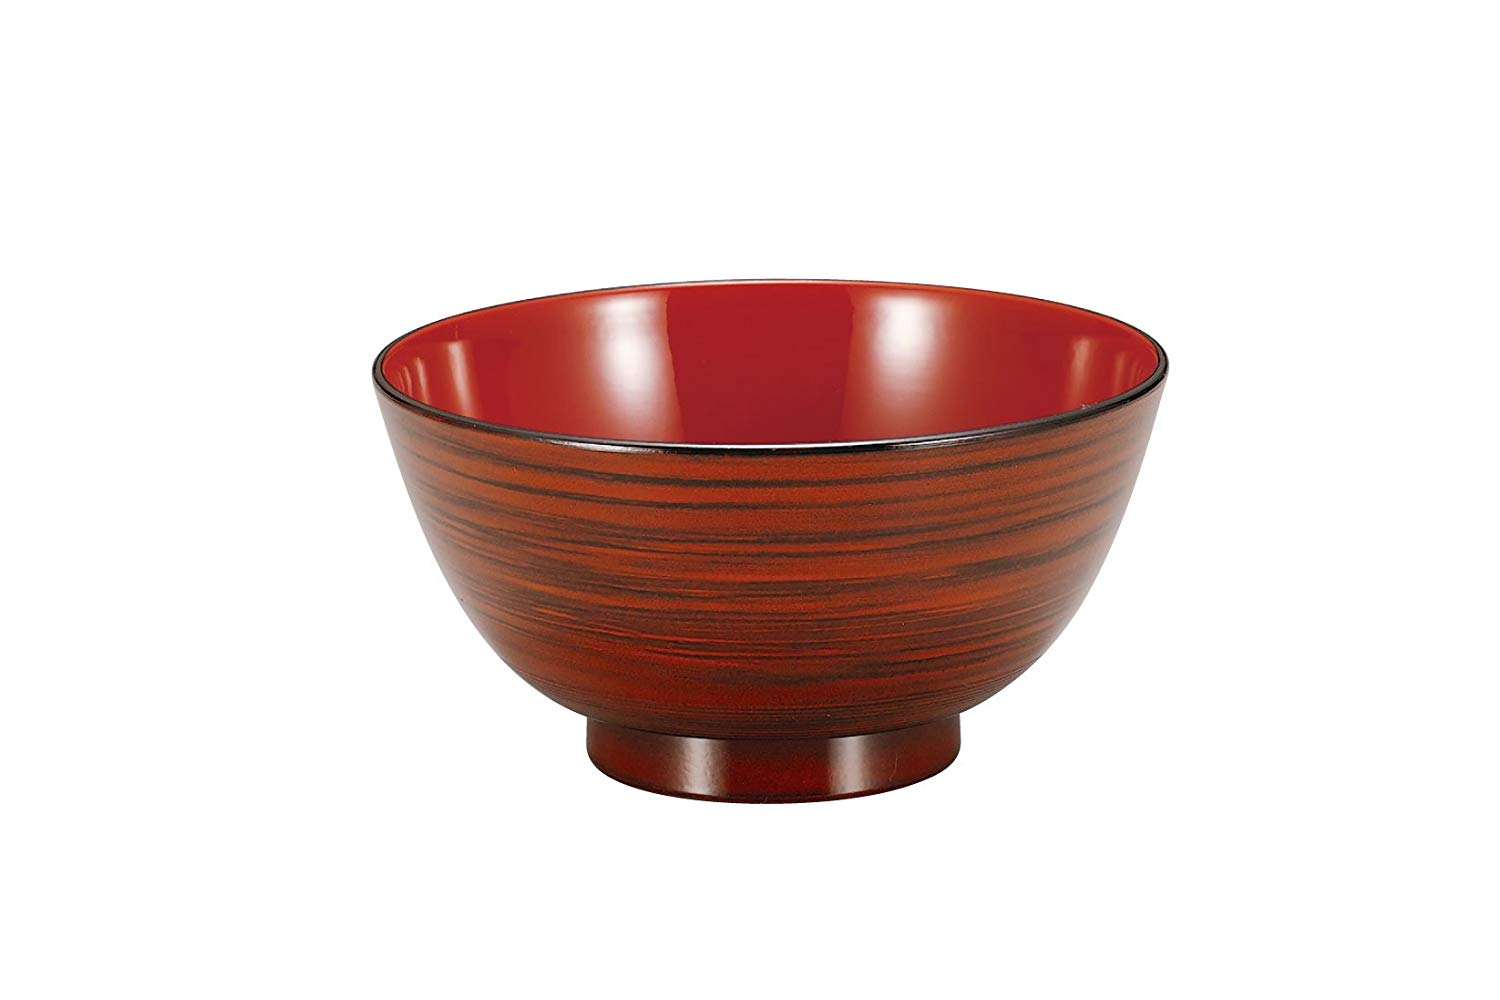 Red Woodgrain Ramen Bowl by Hakoya - Bento&co Japanese Bento Lunch Boxes and Kitchenware Specialists